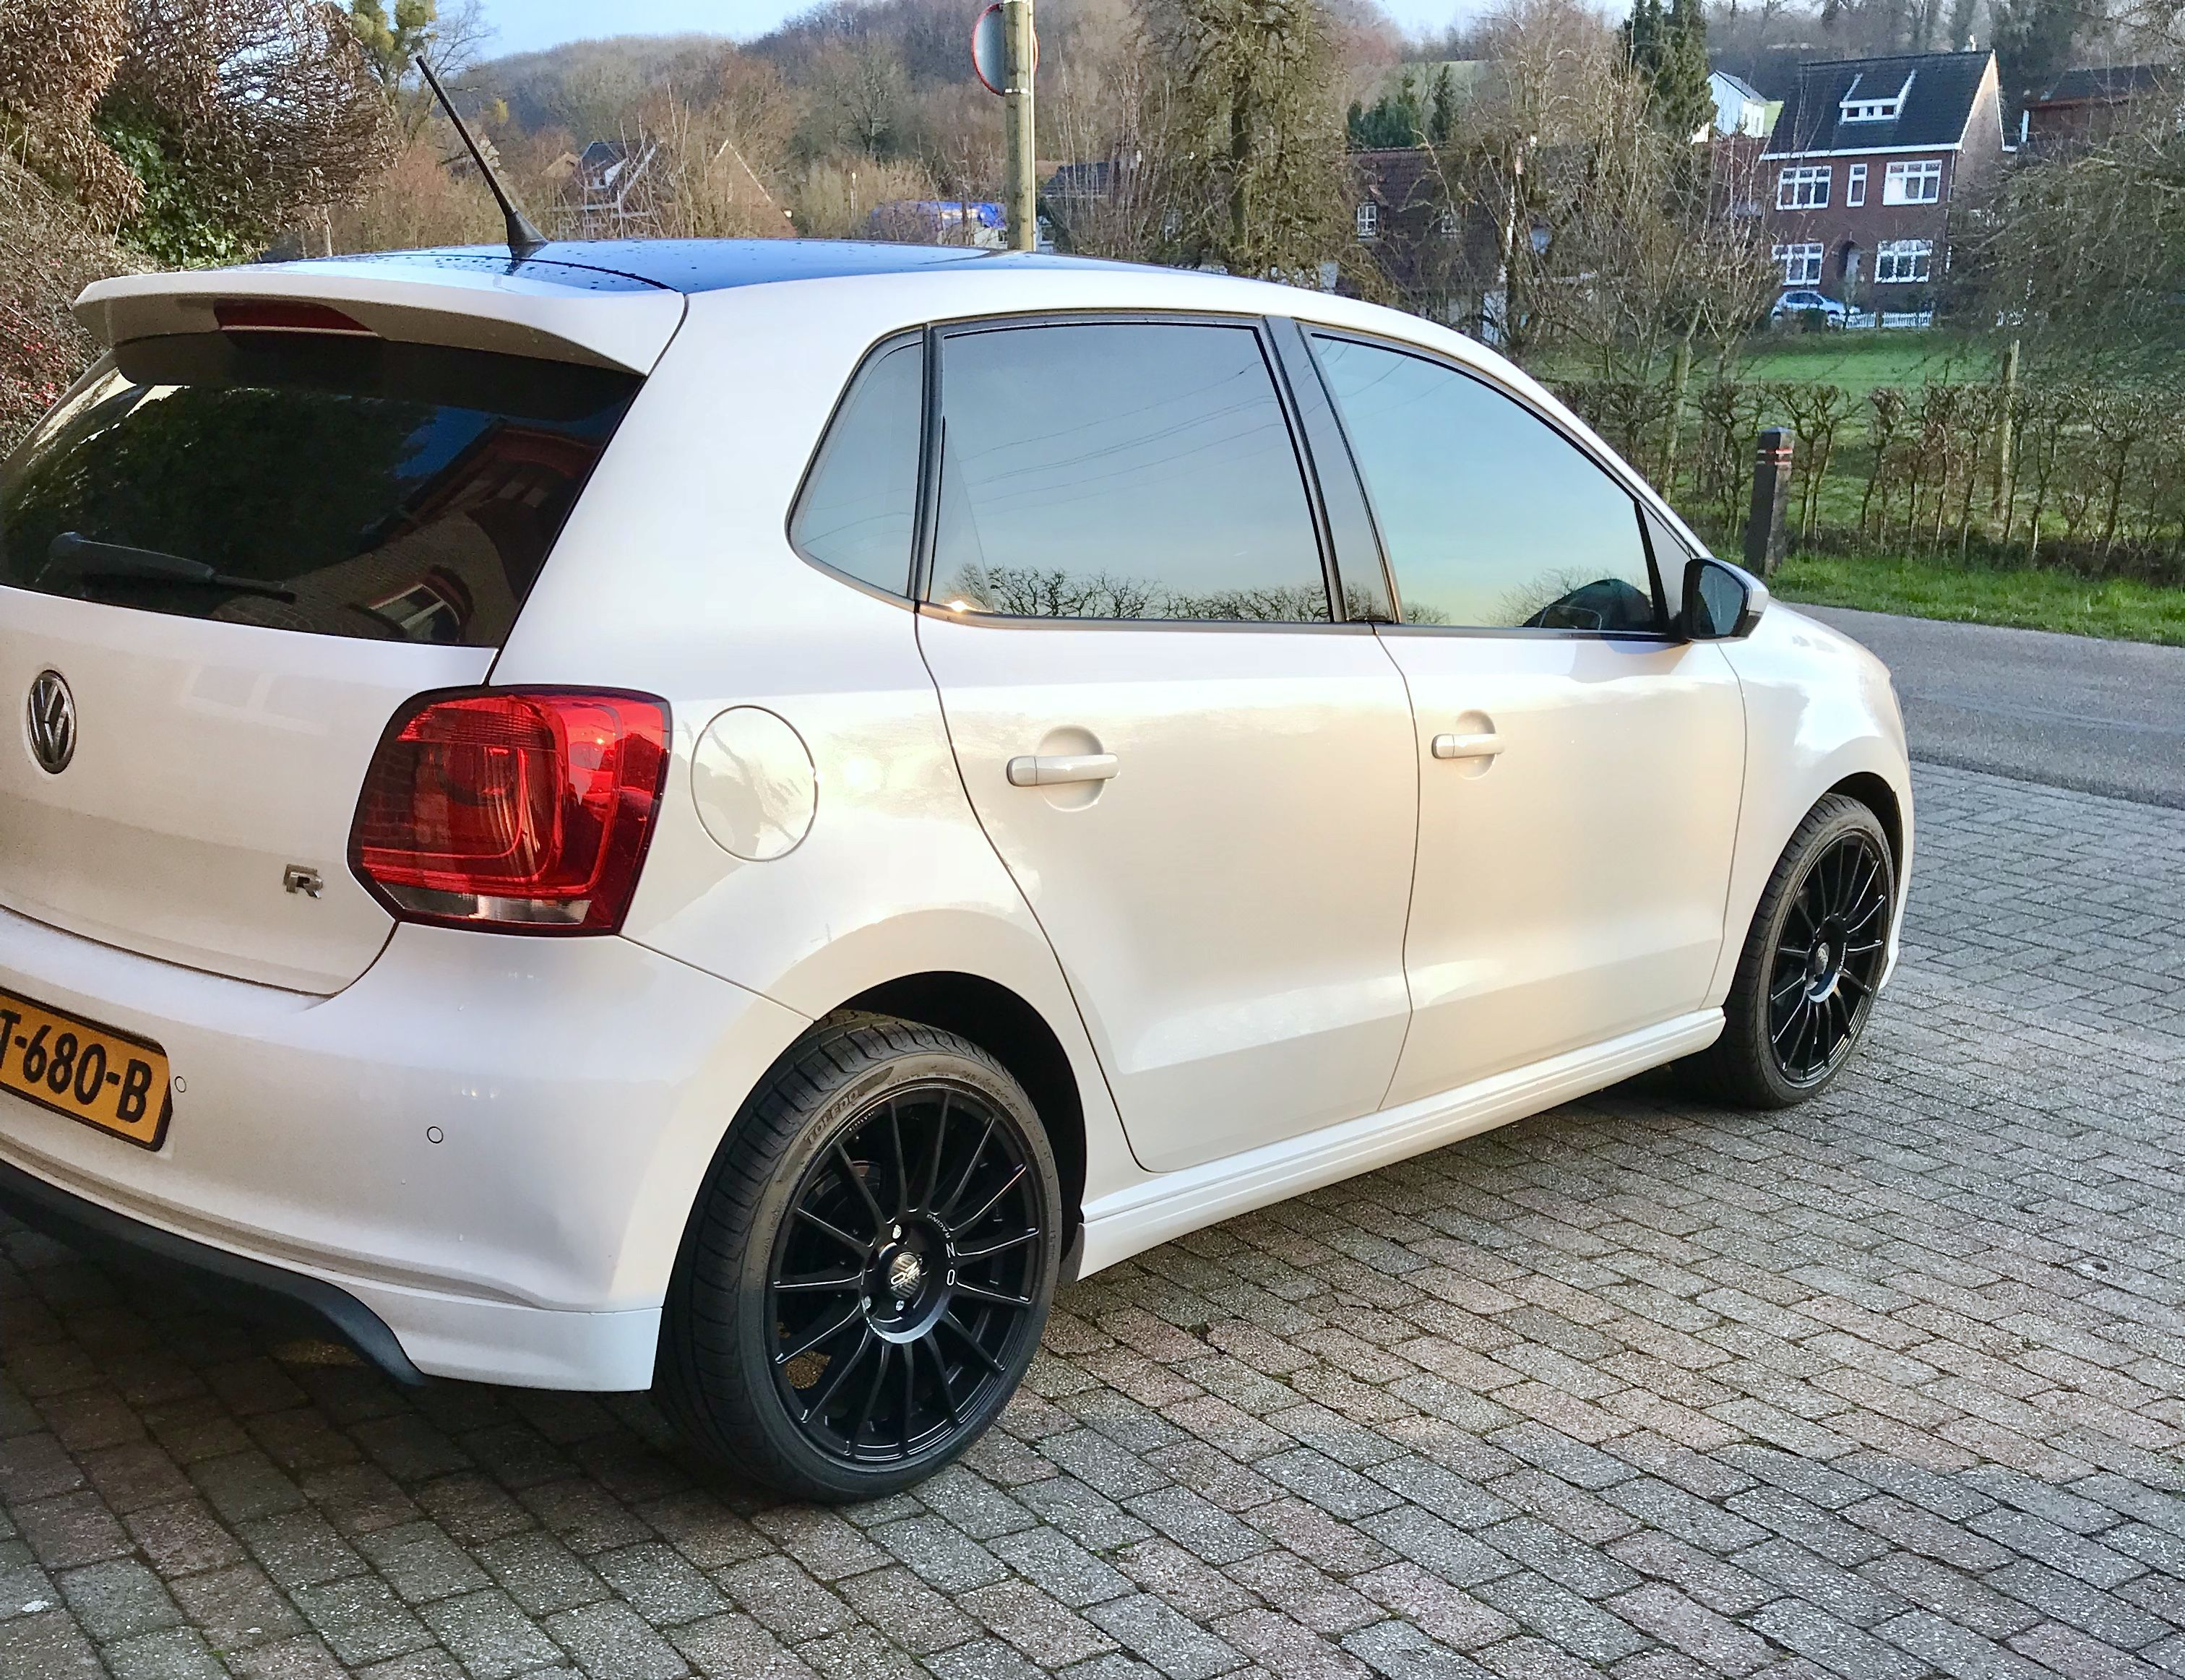 Volkswagen Polo R With Oz Superturismo Lm Matt Black Rims Oz